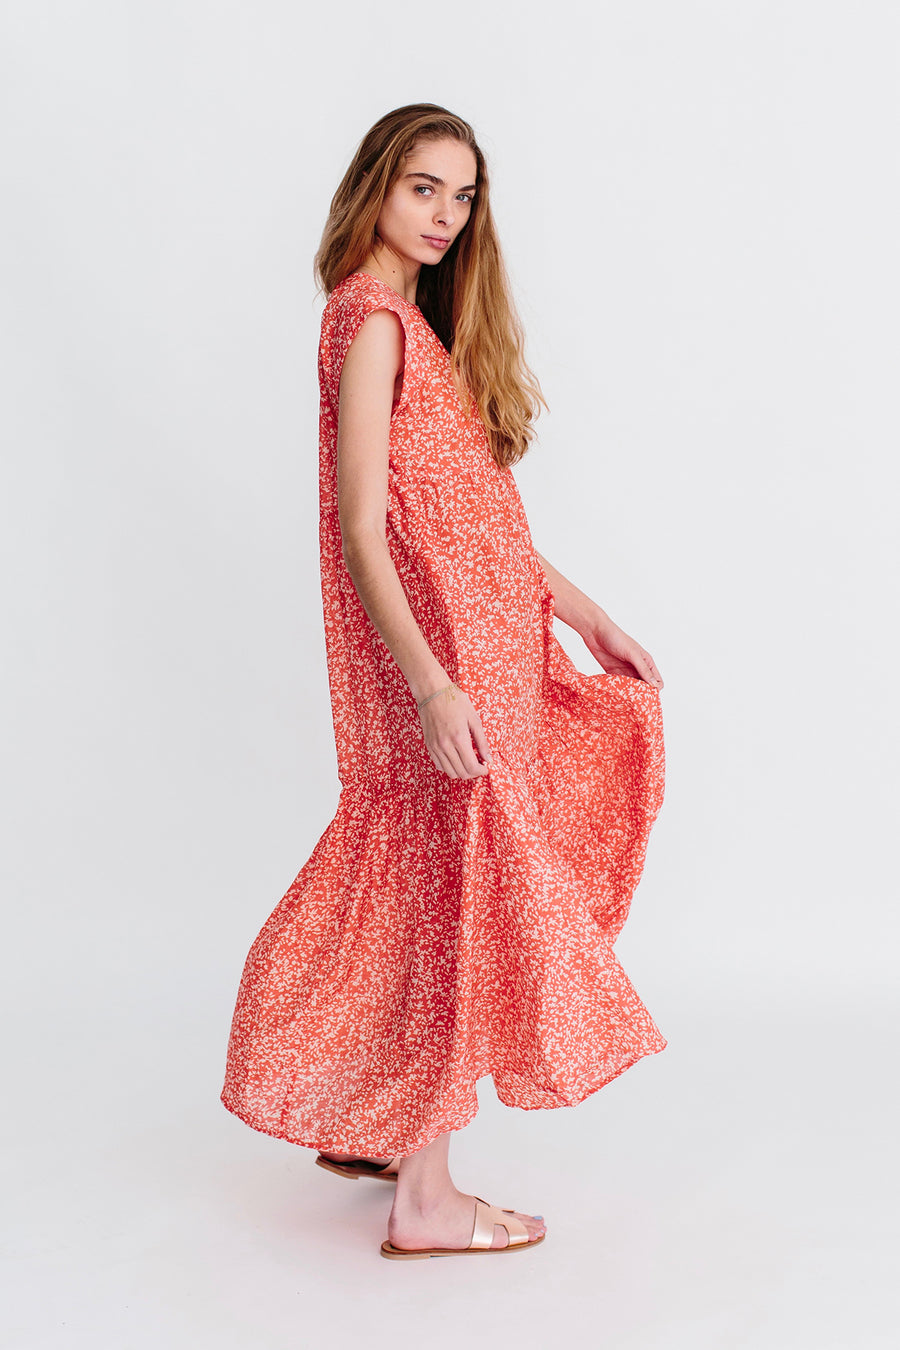 Vienna Maxi Dress in Poppy